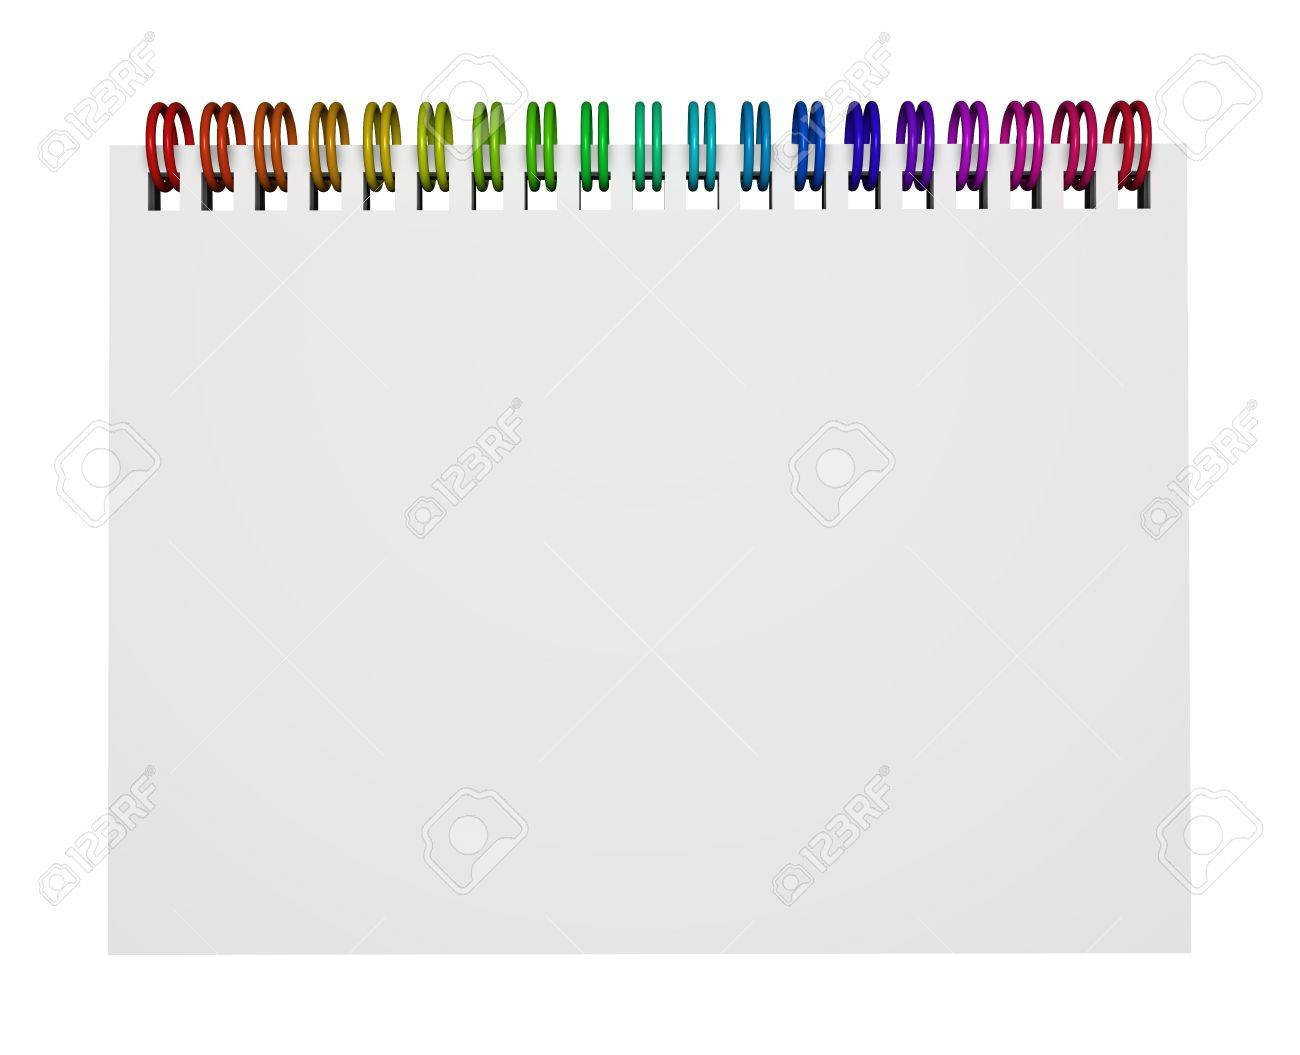 Crayon Rings Top View Of A Notebook Or Ring Binder With Rainbow Colorful Rings